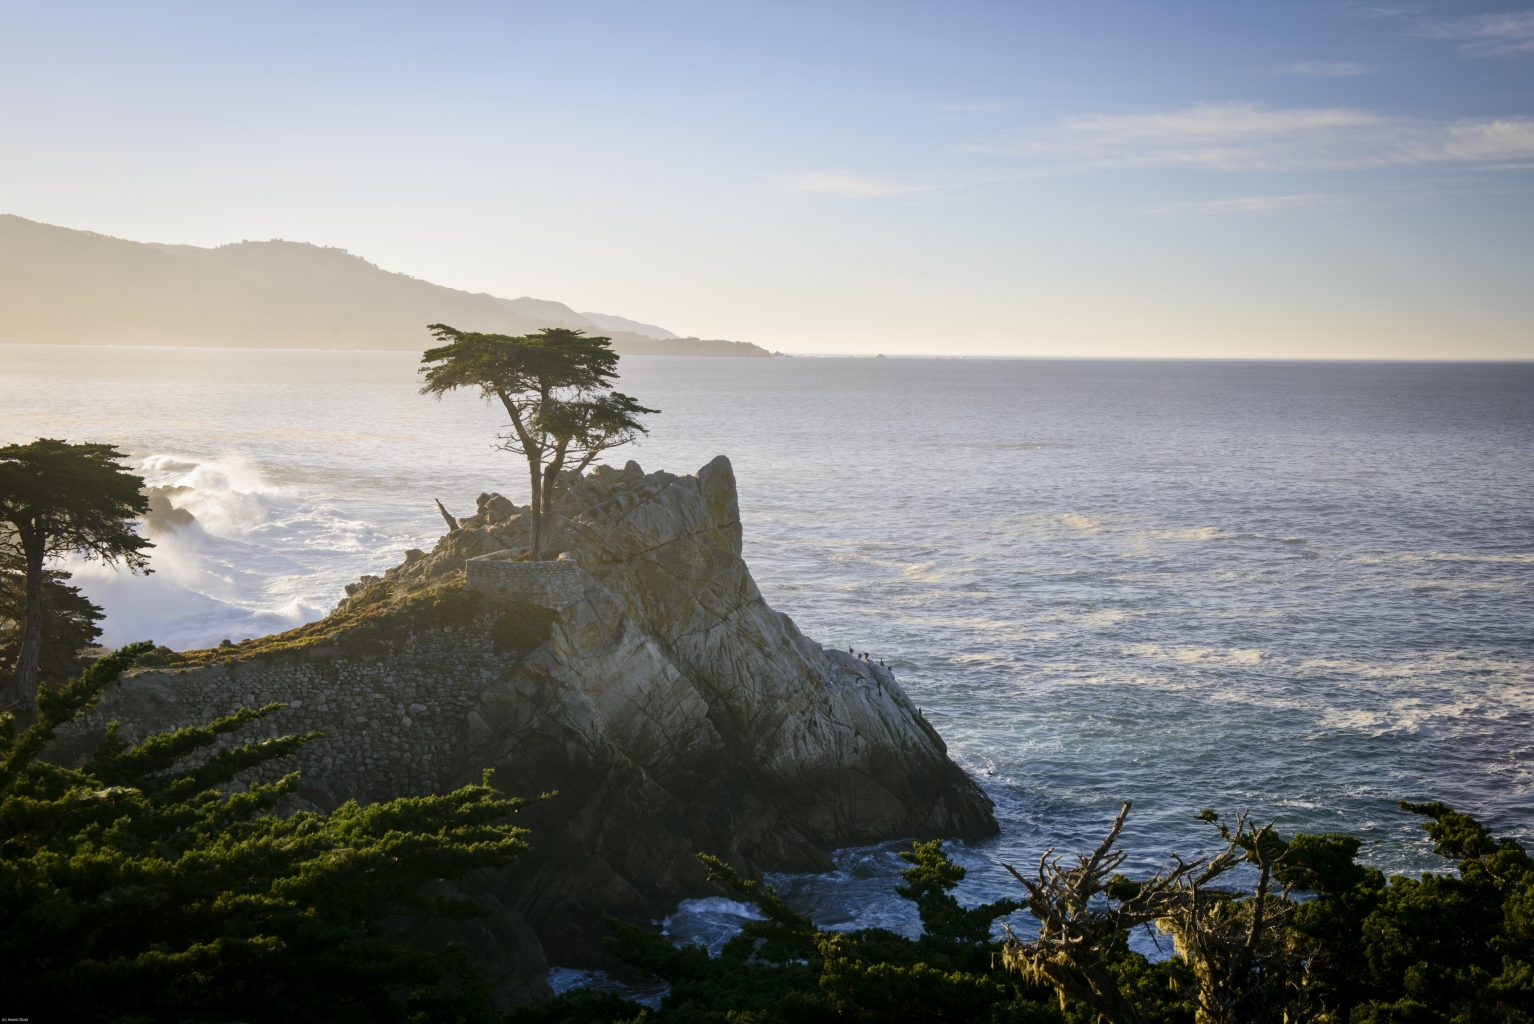 The Lone Cypress Stands Alone